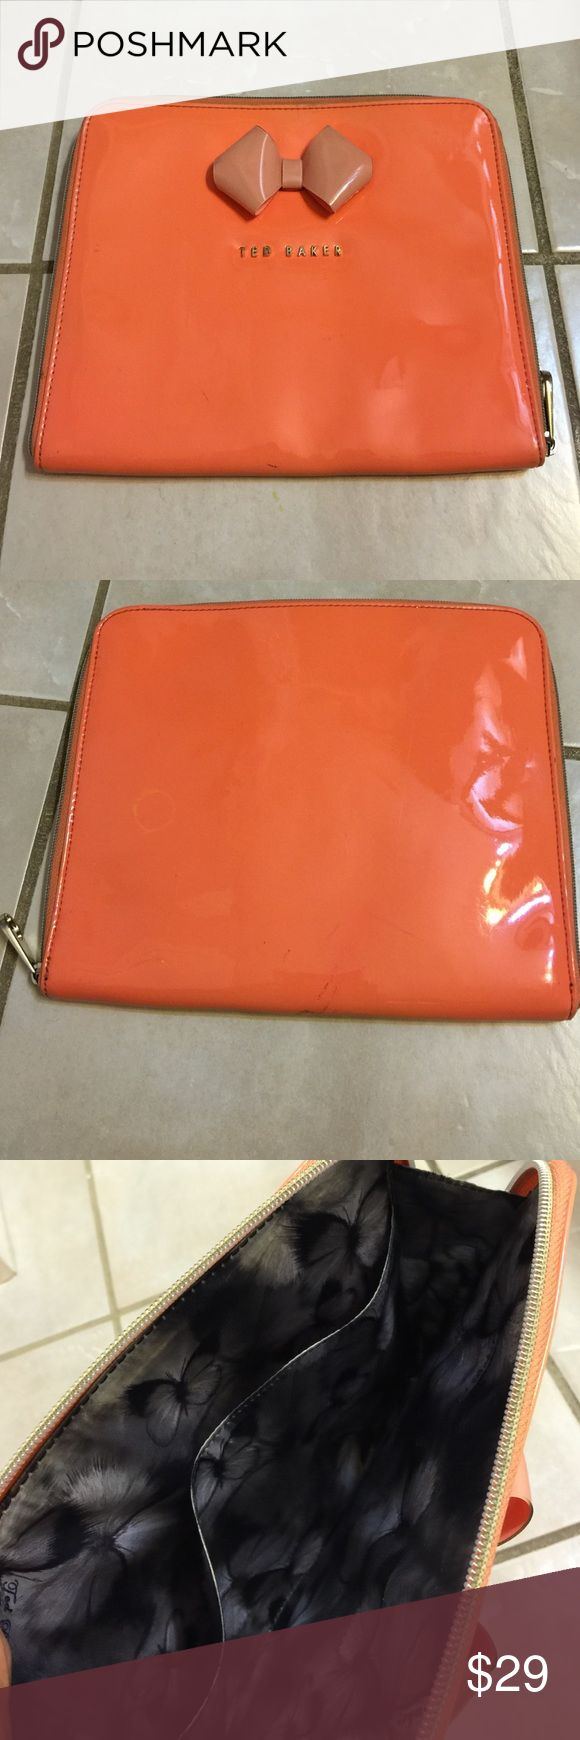 Ted Baker Designer iPad Case **TED BAKER** Orange color IPad Case wth inner compartment. Great  condition with only pen marks/lines outside as shown in photo #4. No dustbag. No Trades. Ted Baker Accessories Tablet Cases